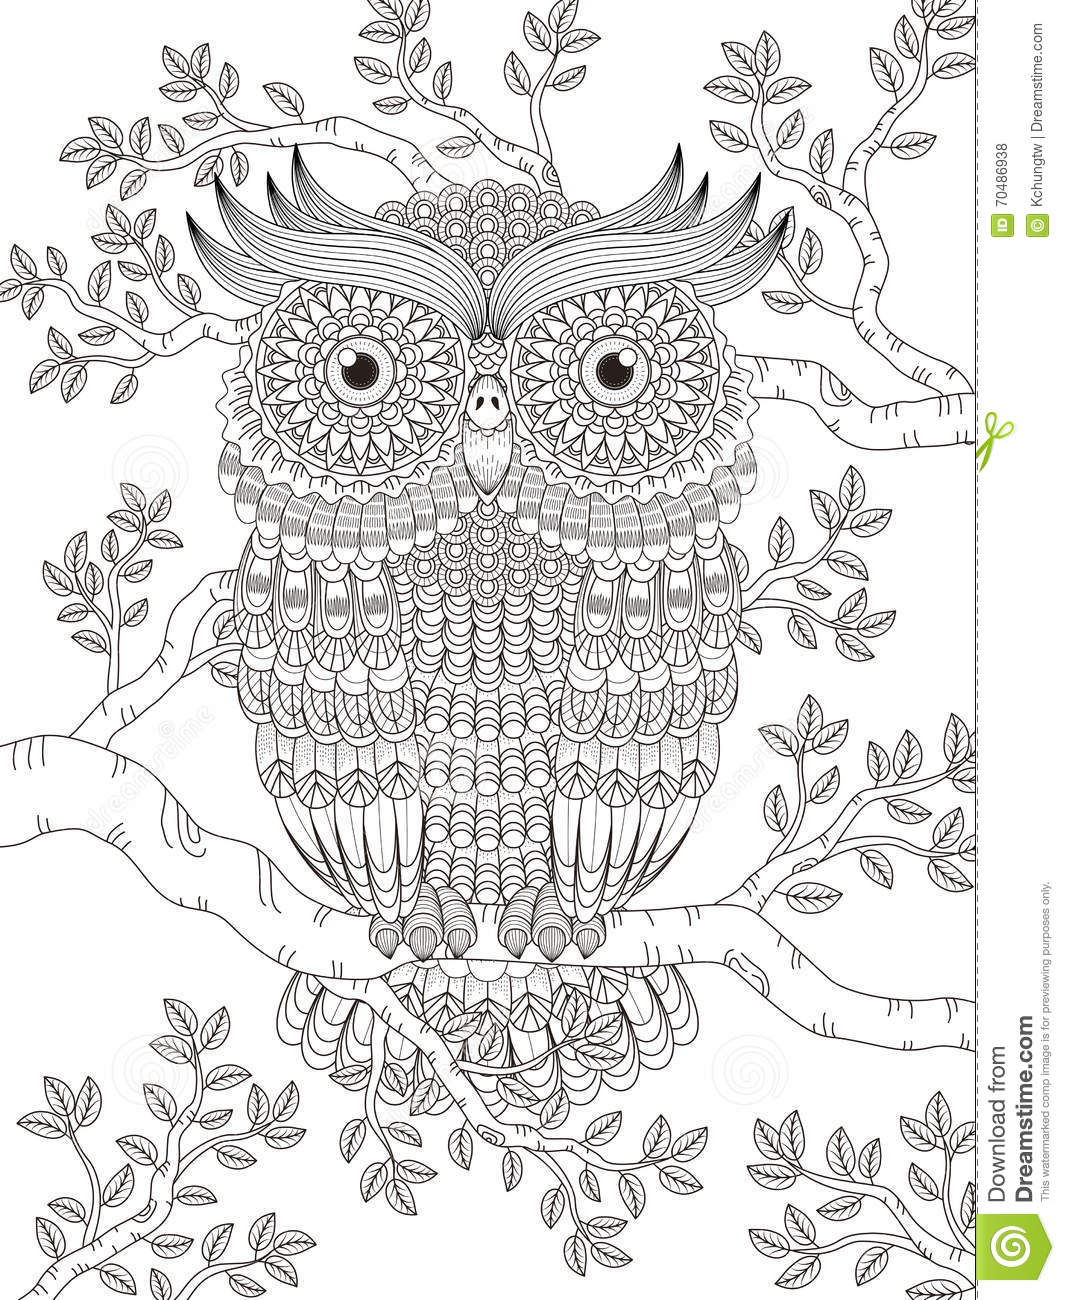 Adult coloring page with gorgeous owl stock illustration image